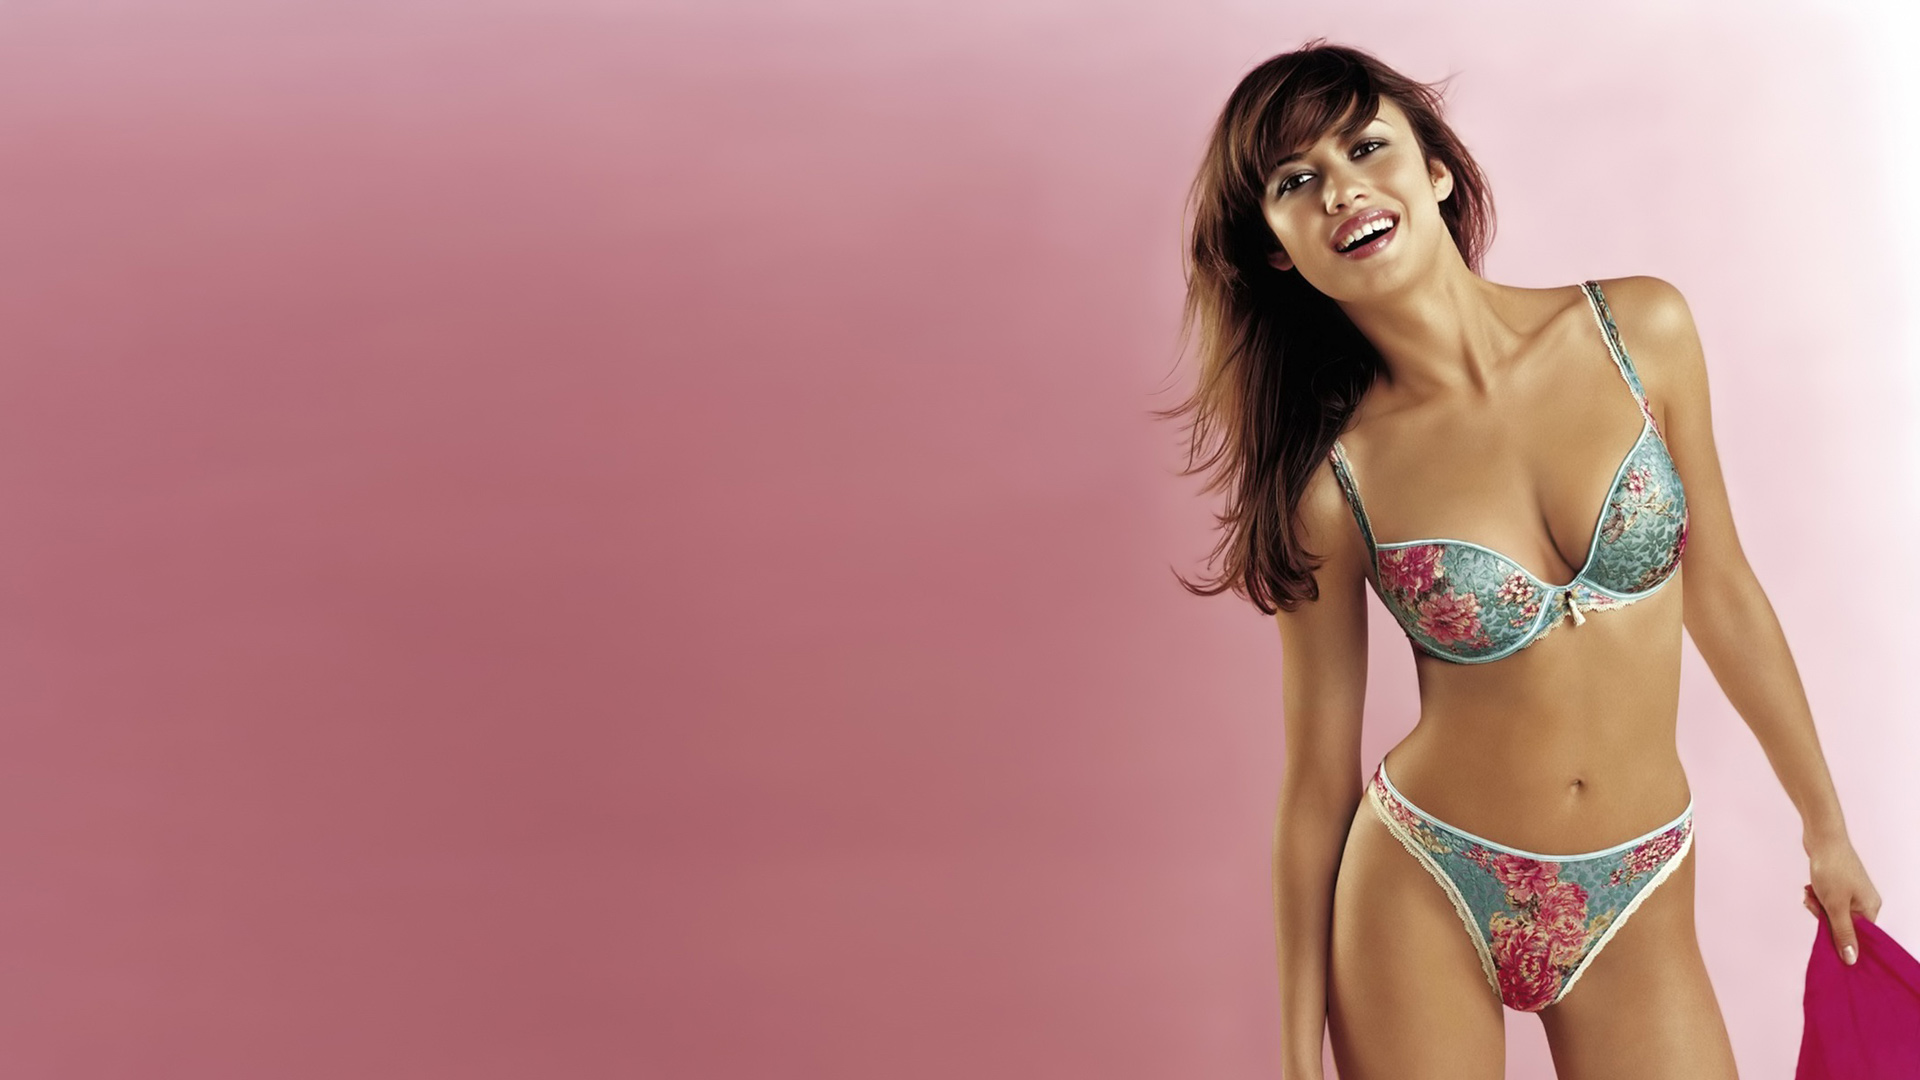 Olga Kurylenko - Flower Lingerie Wallpapers